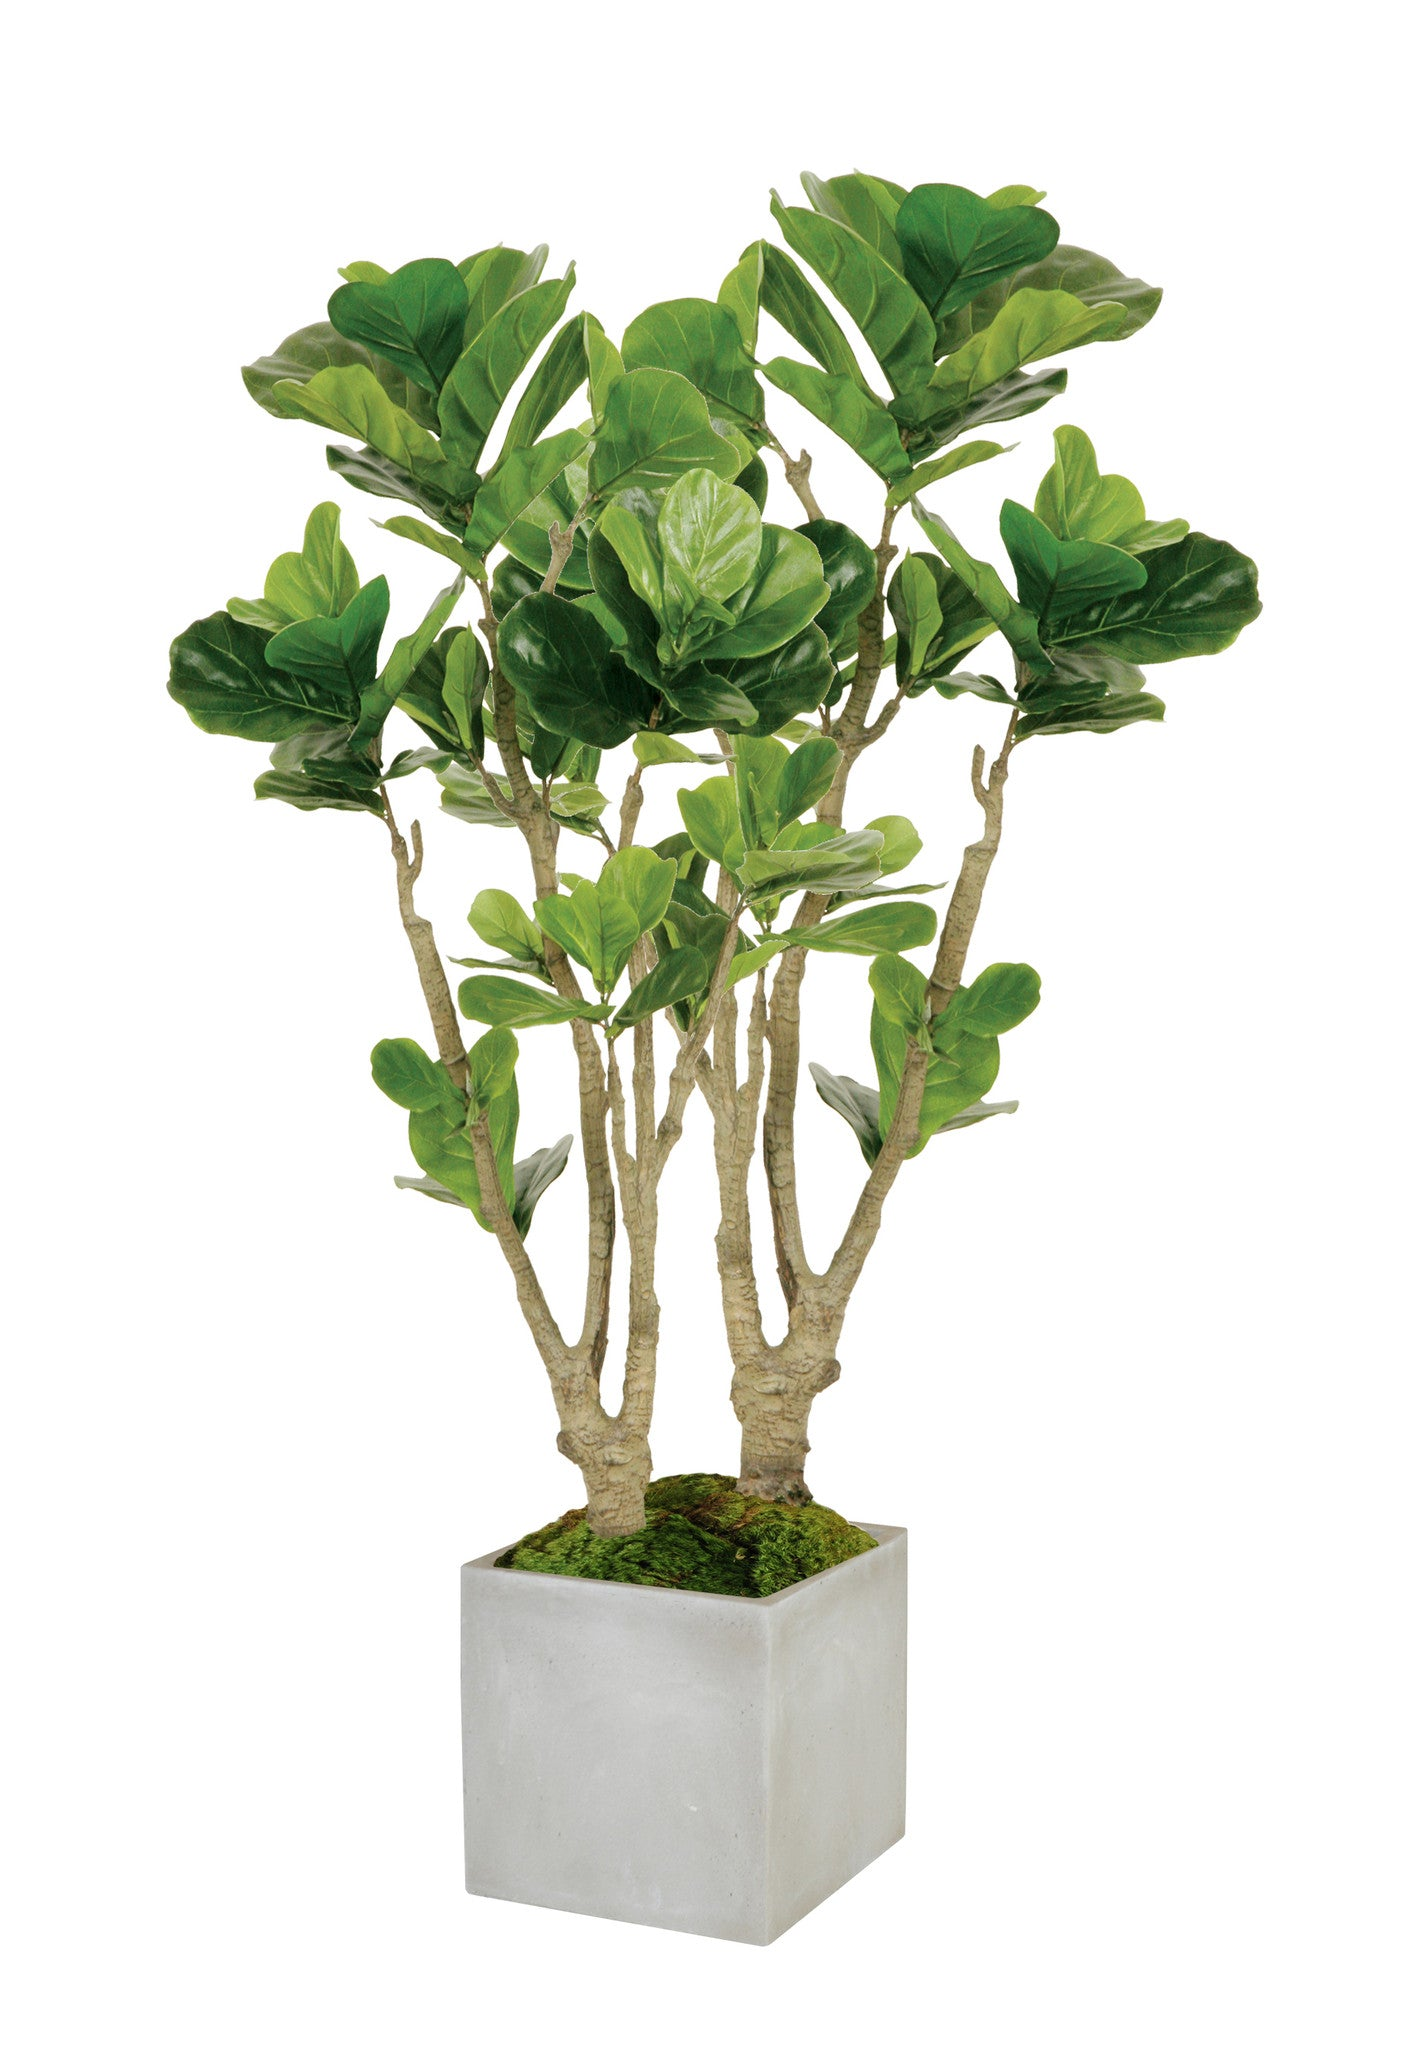 FIDDLE LEAF FIG TREE MEDIUM (WHD112-GR) - Winward Home faux floral arrangements